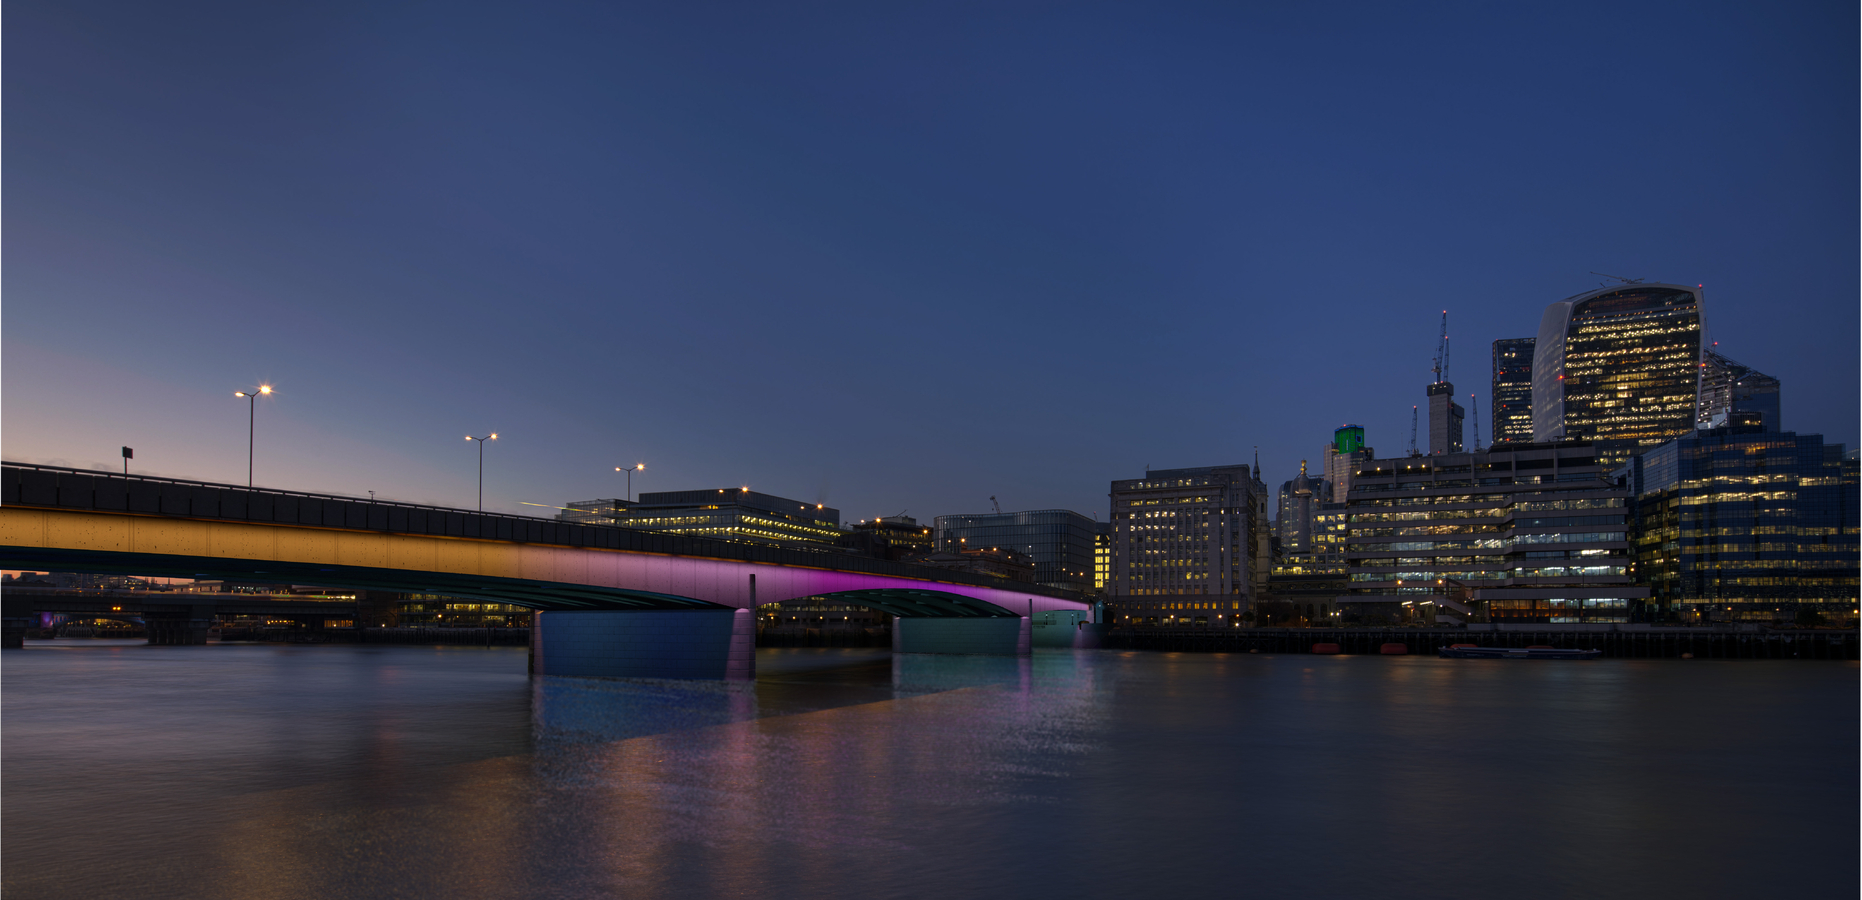 London Bridge highlights as seen from the Southbank